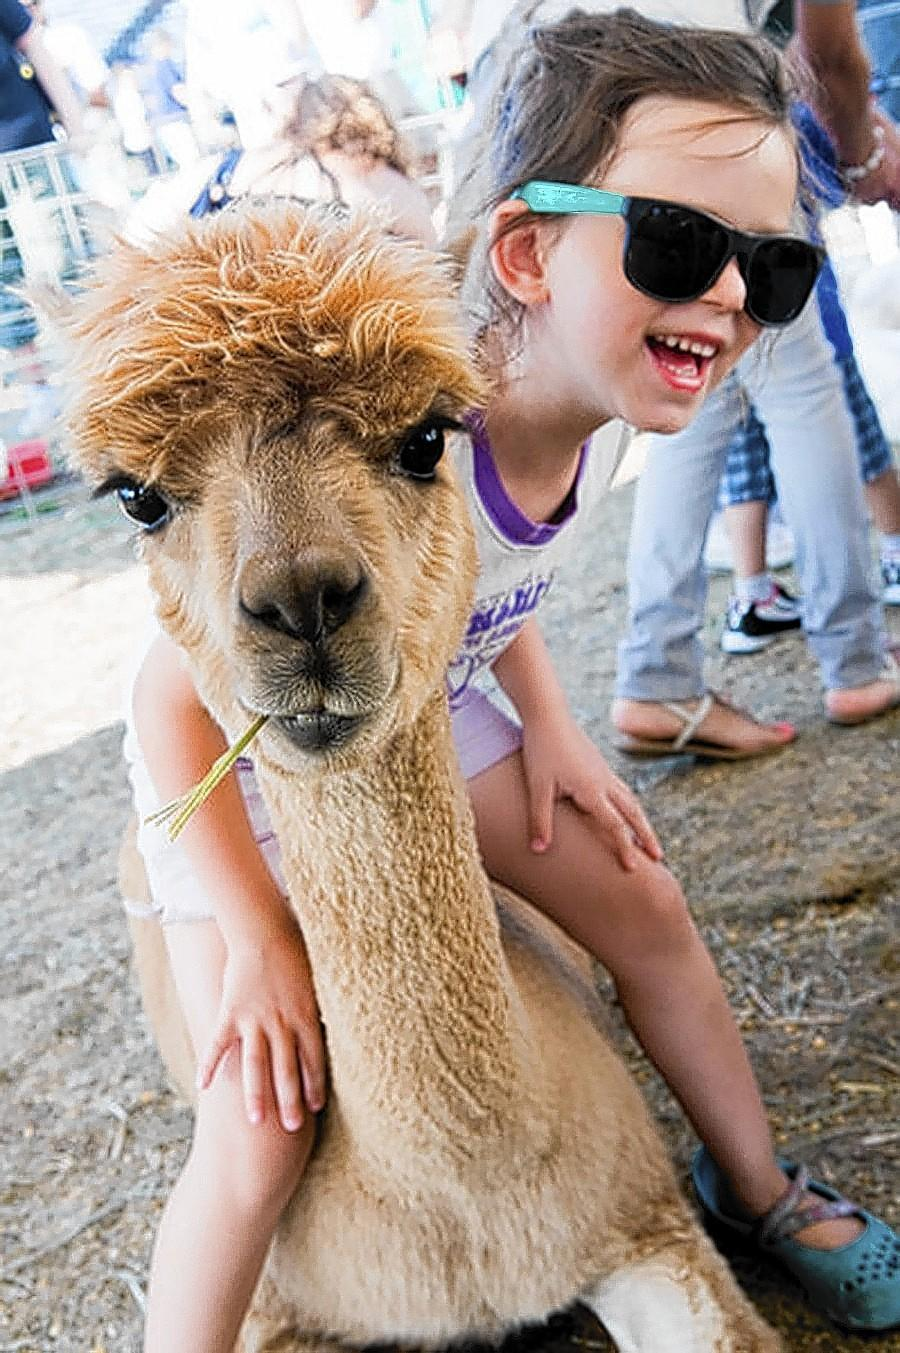 Visitors can get close to animals such as a llama at the 86th Annual Lake County Fair's petting zoo.